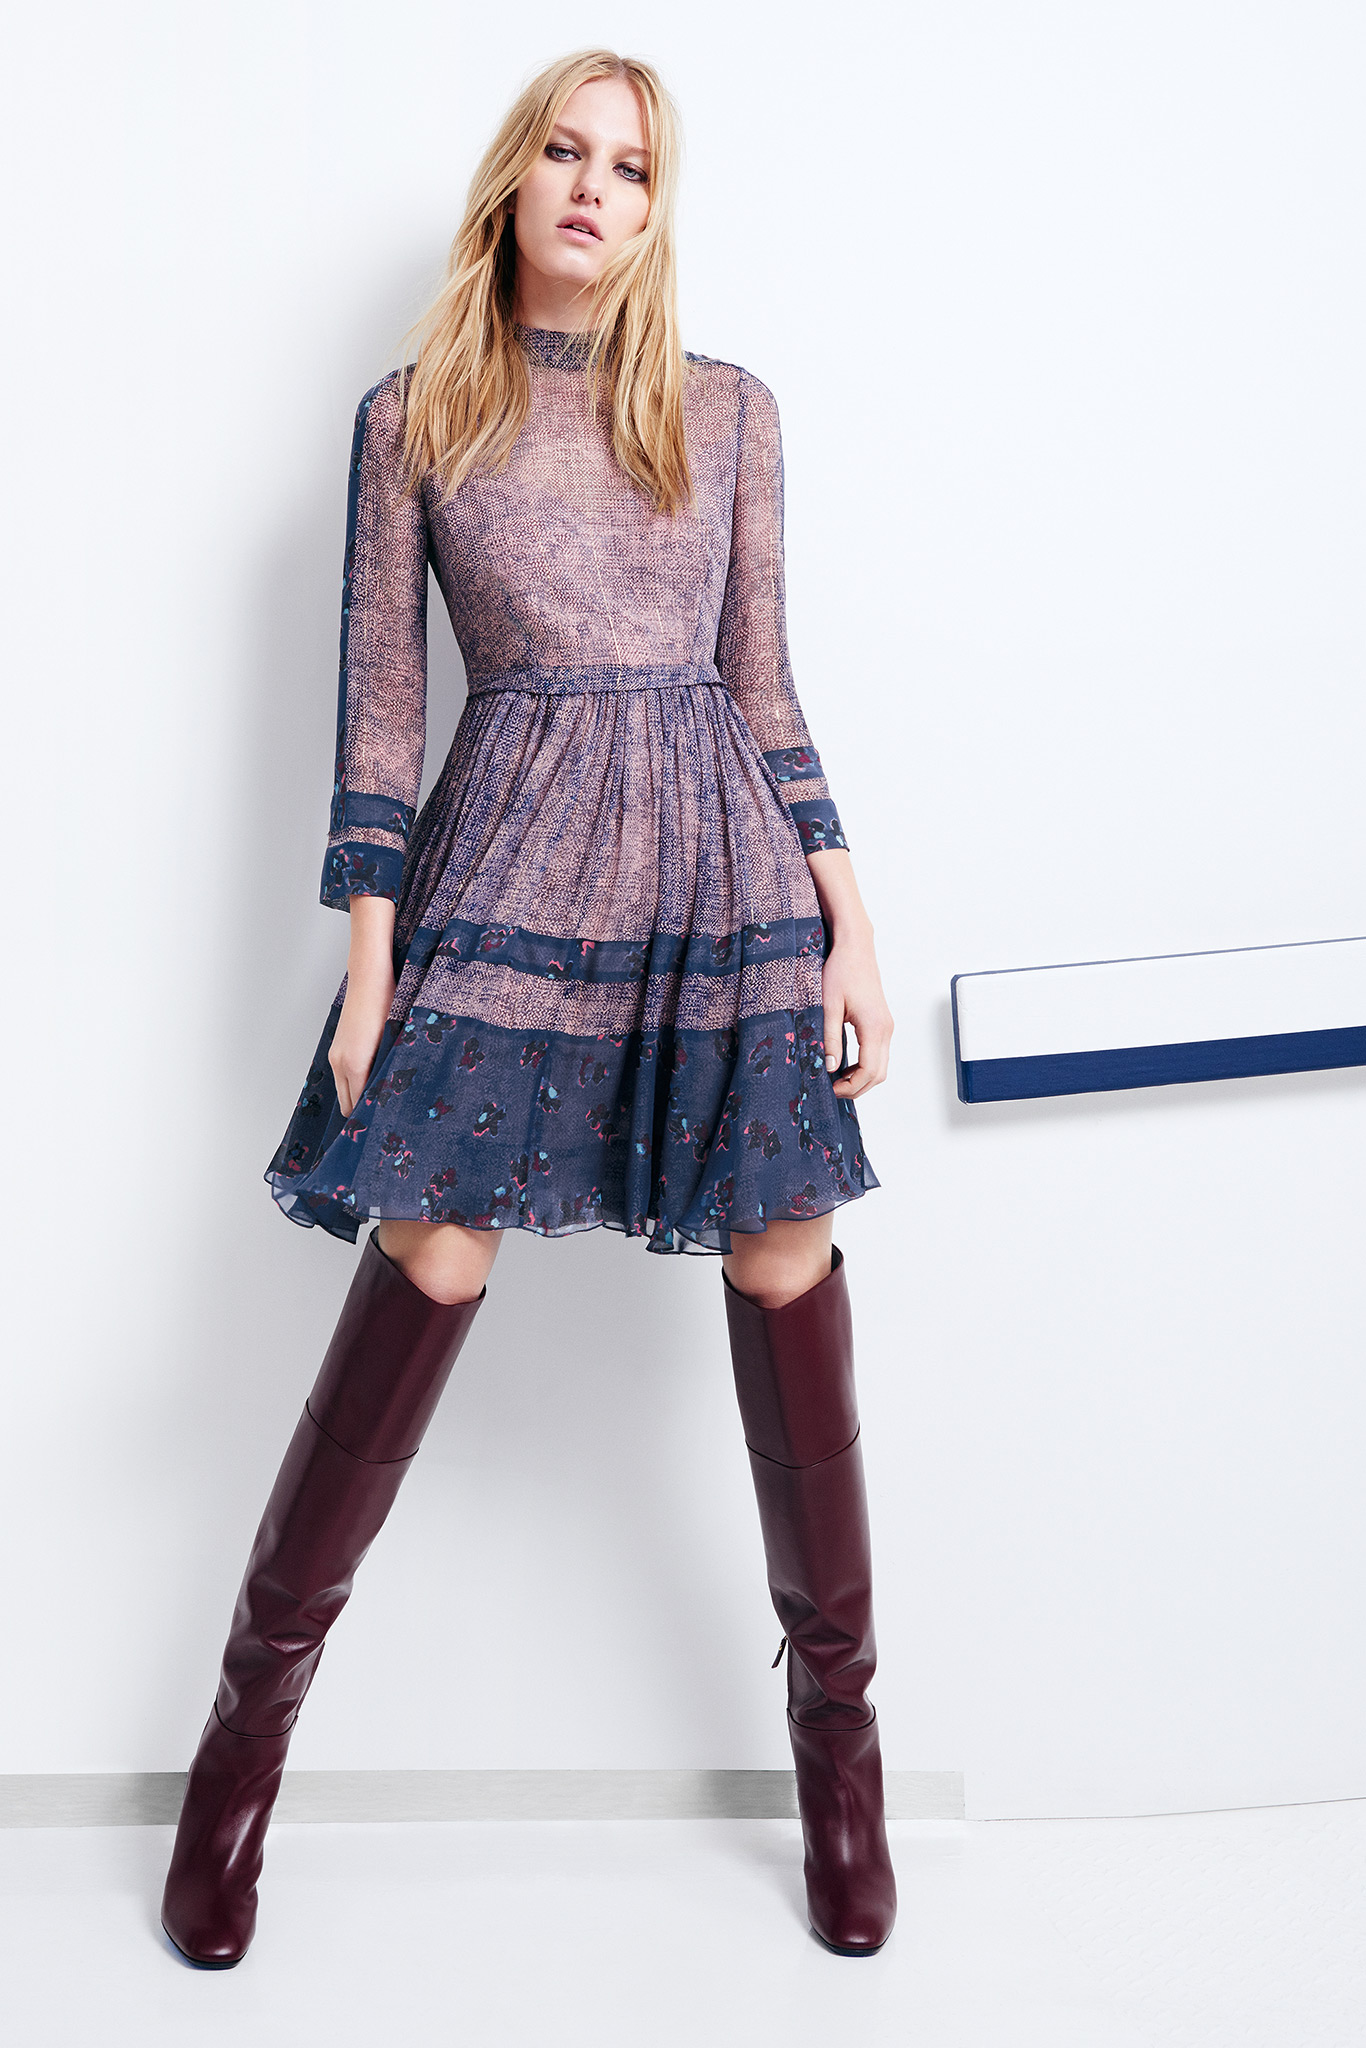 Rebecca Taylor Fall 2015 Ready-to-Wear Look 10 Photo: Courtesy of Rebecca Taylor   Style.com   Fall 2015 RTW Runway Looks